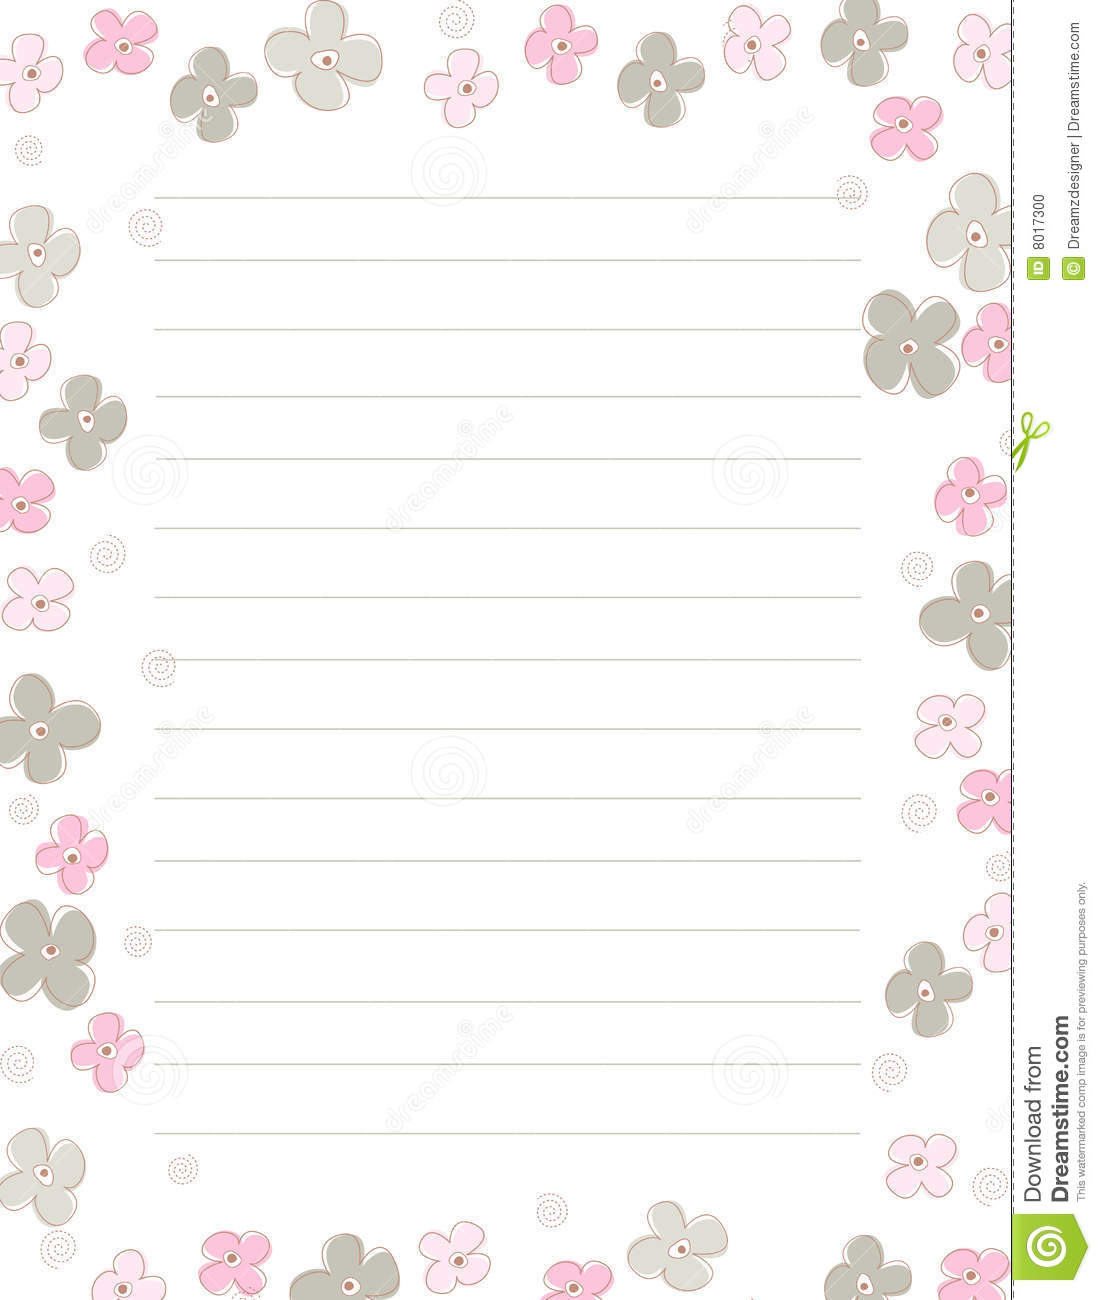 spring flowers note paper stock illustration. illustration of cute